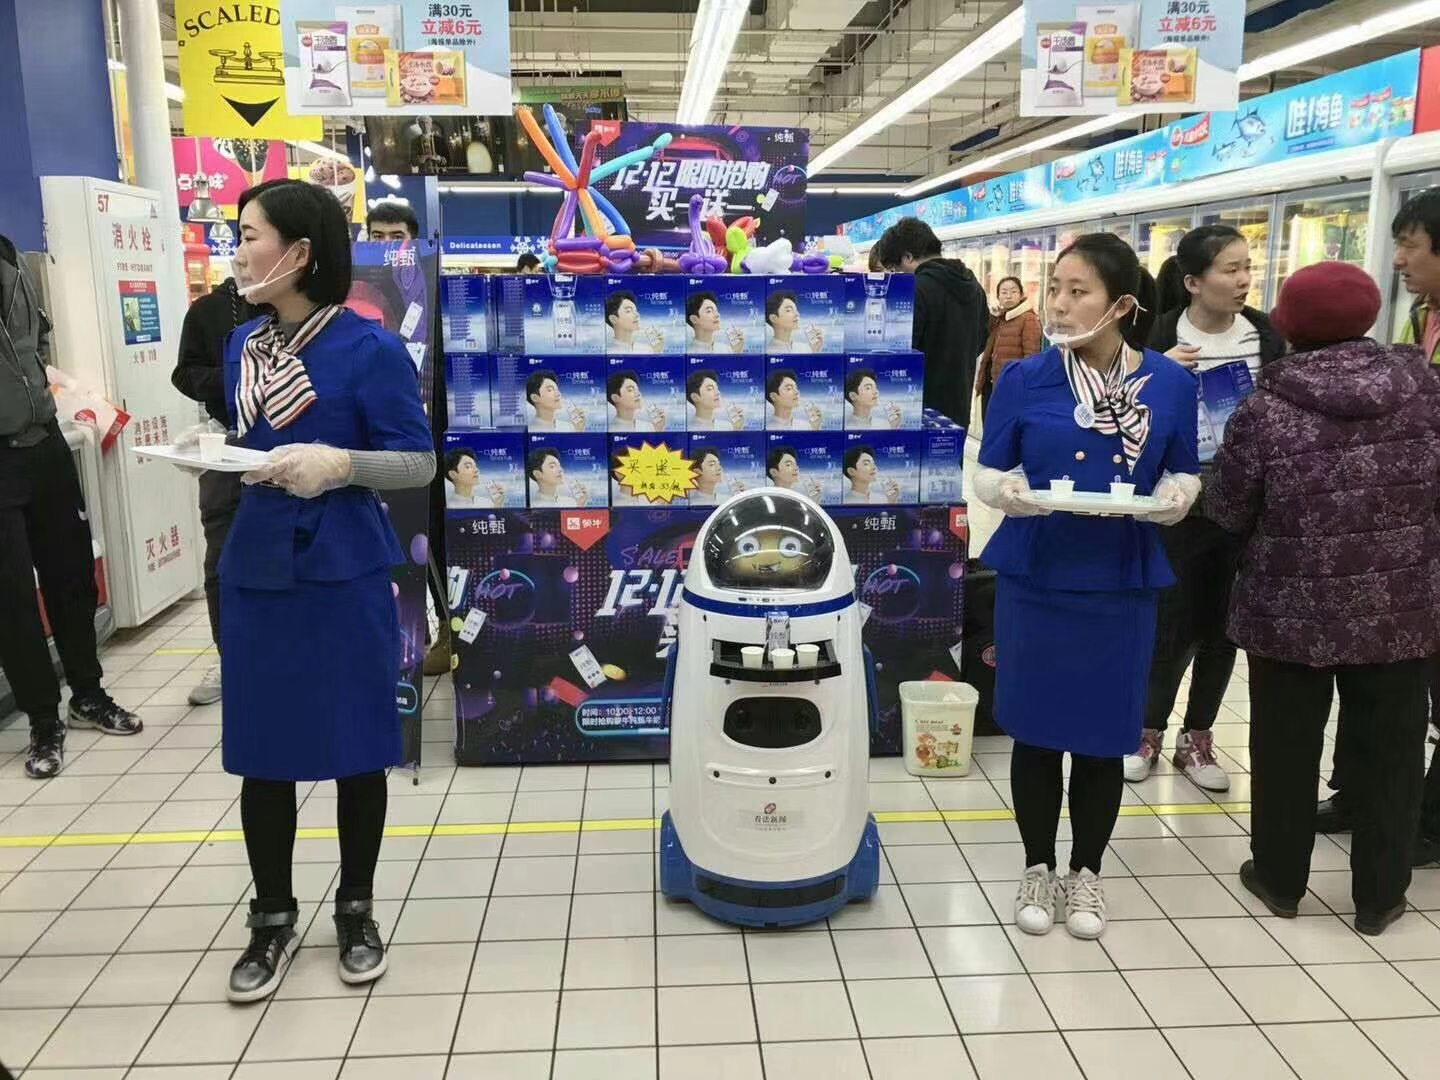 Supermarket shopping guide robot